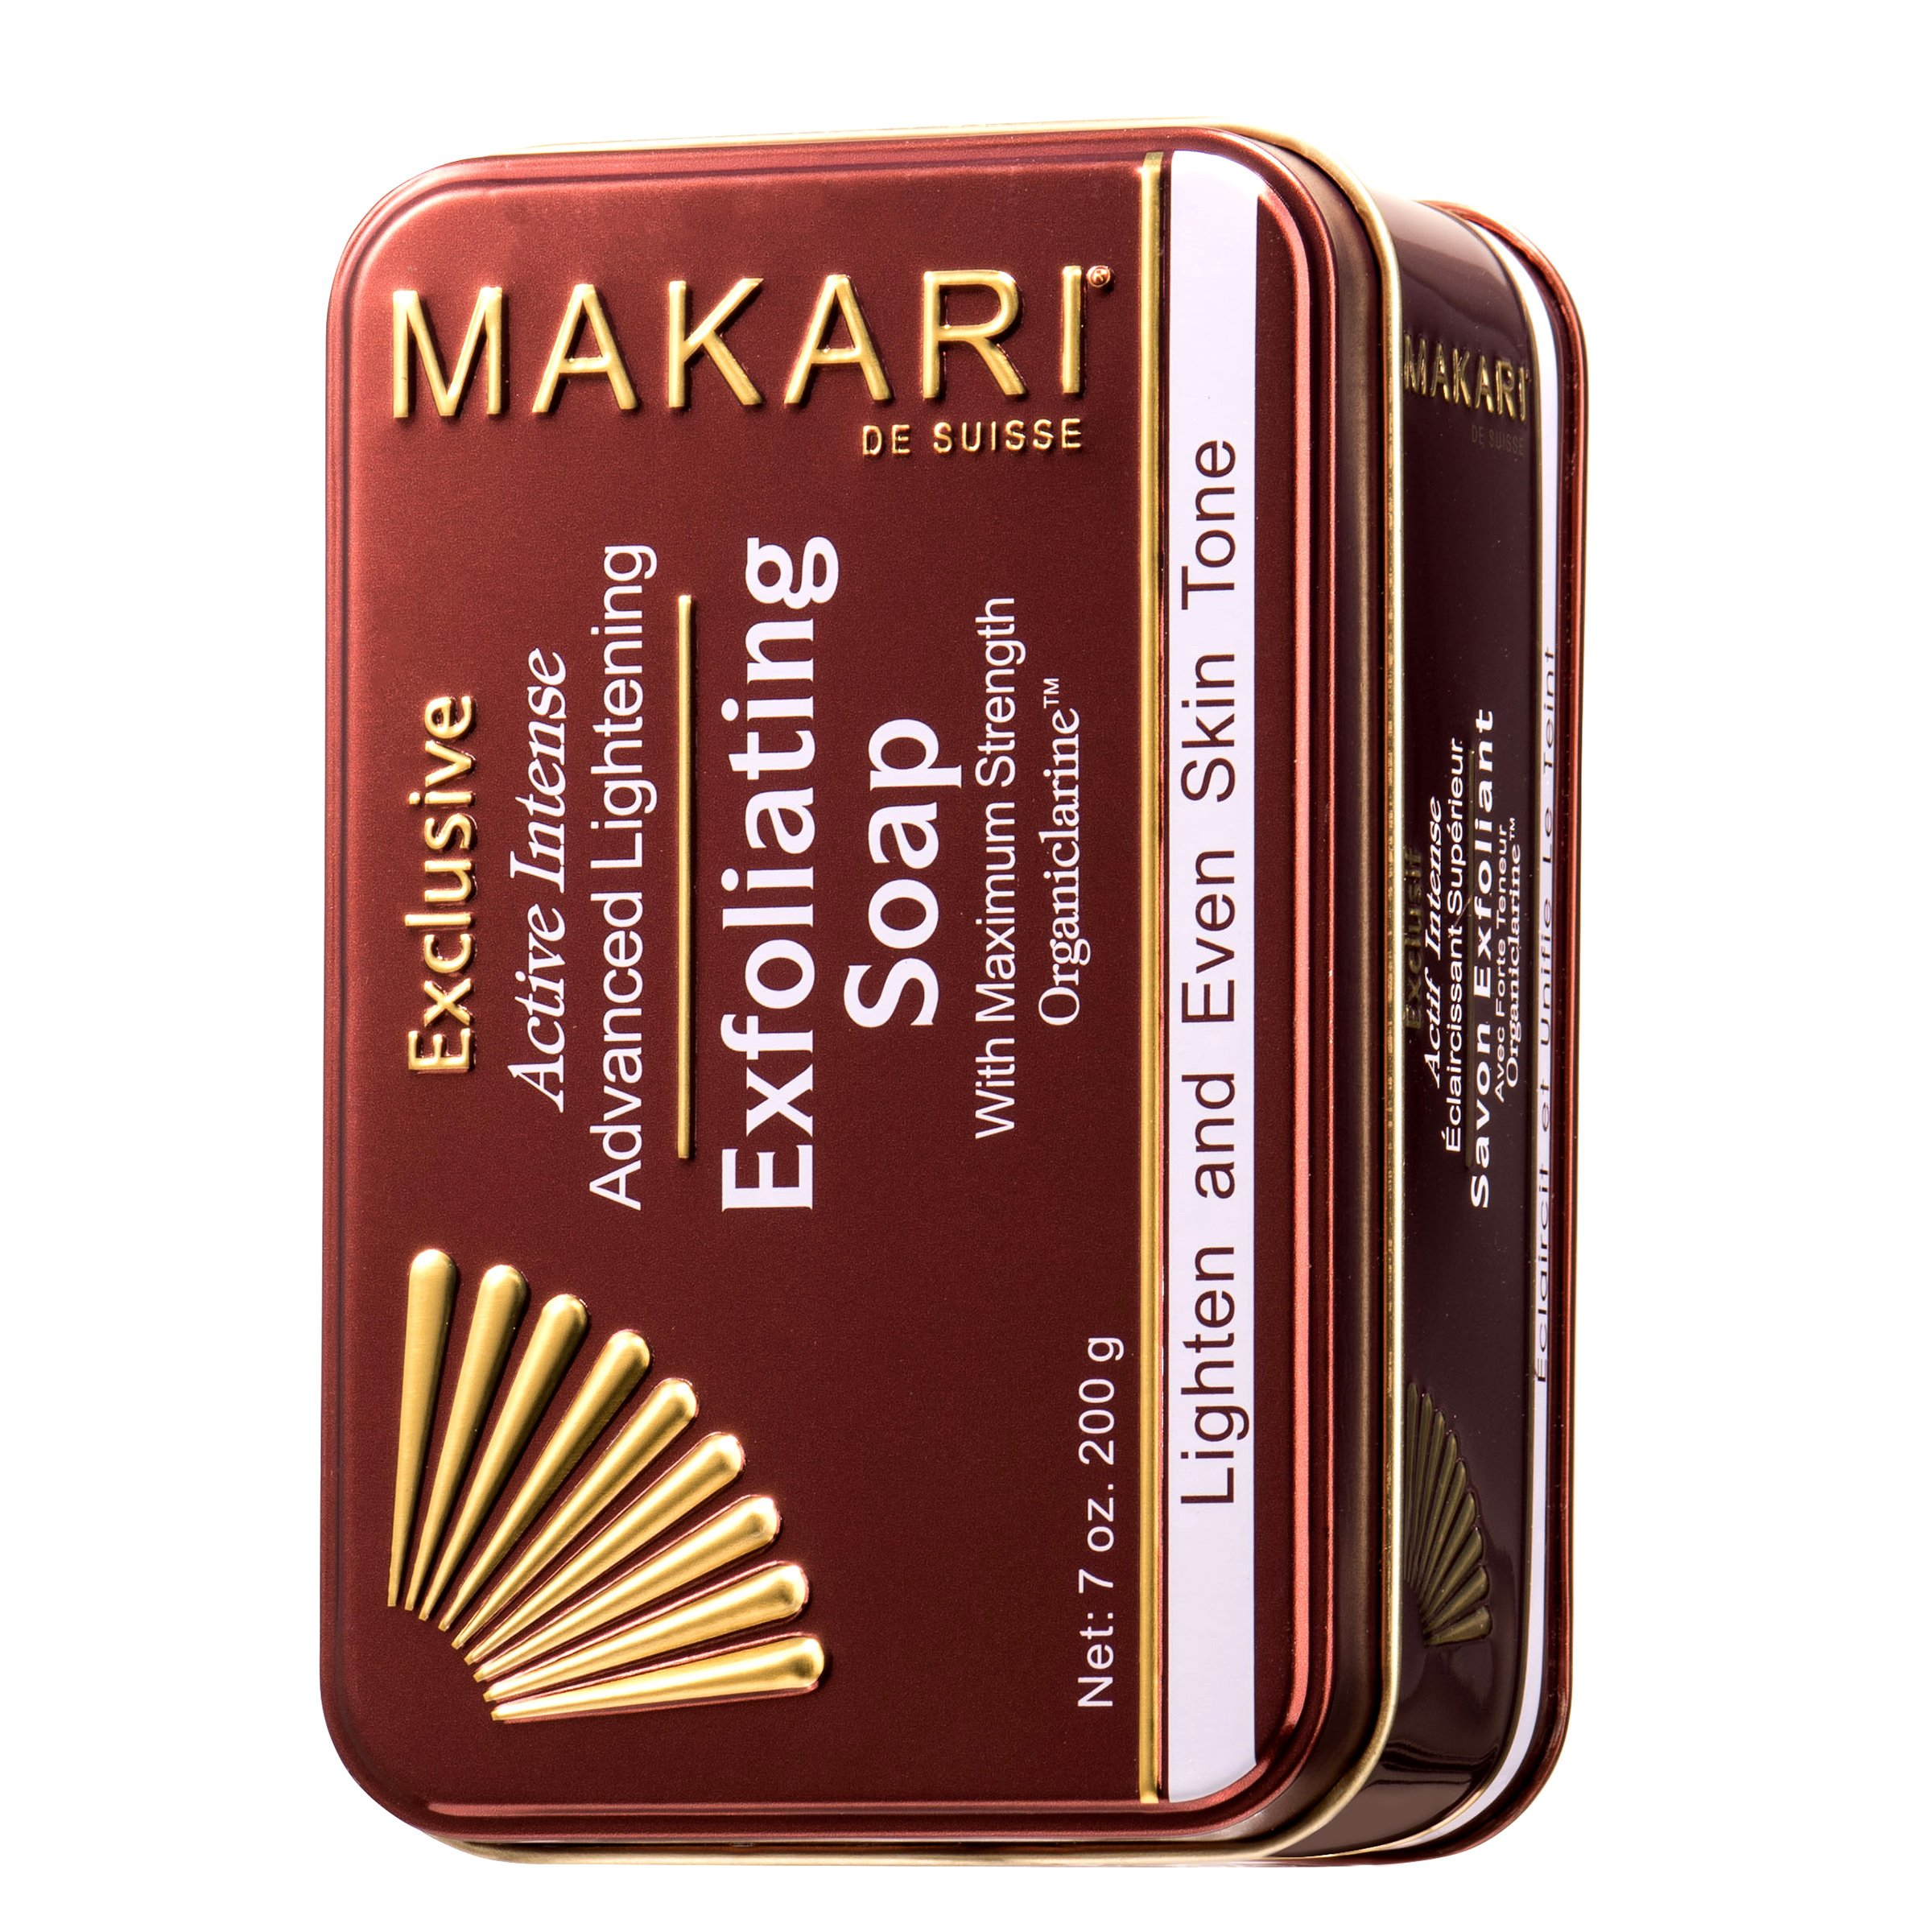 Makari Exclusive 7oz. Skin Lightening & Exfoliating Bar Soap with Organiclarine - Advanced Active Intense Whitening Treatment for Dark Spots, Scars, Sun Patches, Stretch Marks & Hyperpigmentation by MAKARI